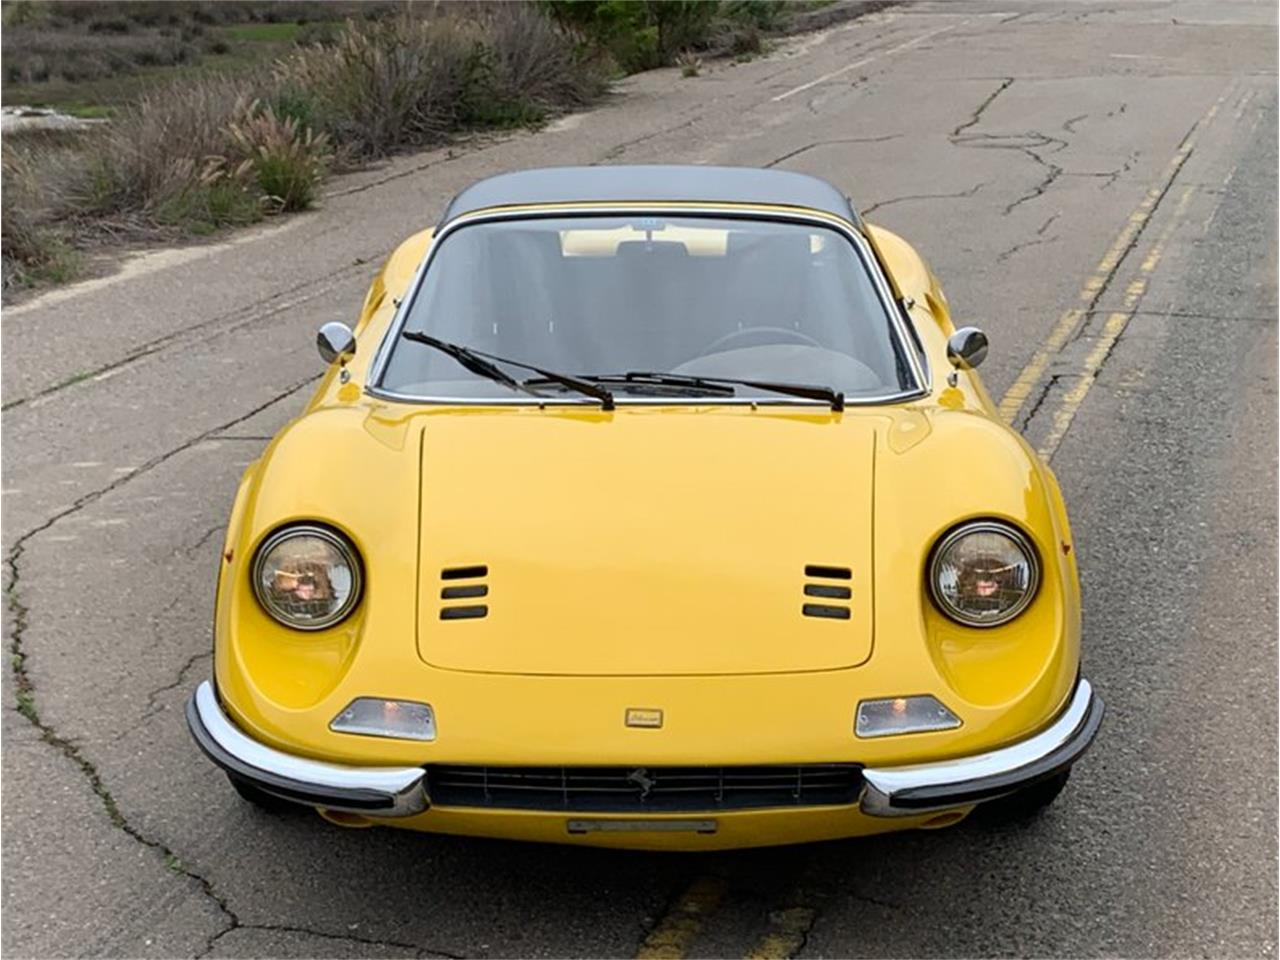 Large Picture of 1973 Ferrari 246 GTS Dino located in California Offered by Symbolic International - Q4TN